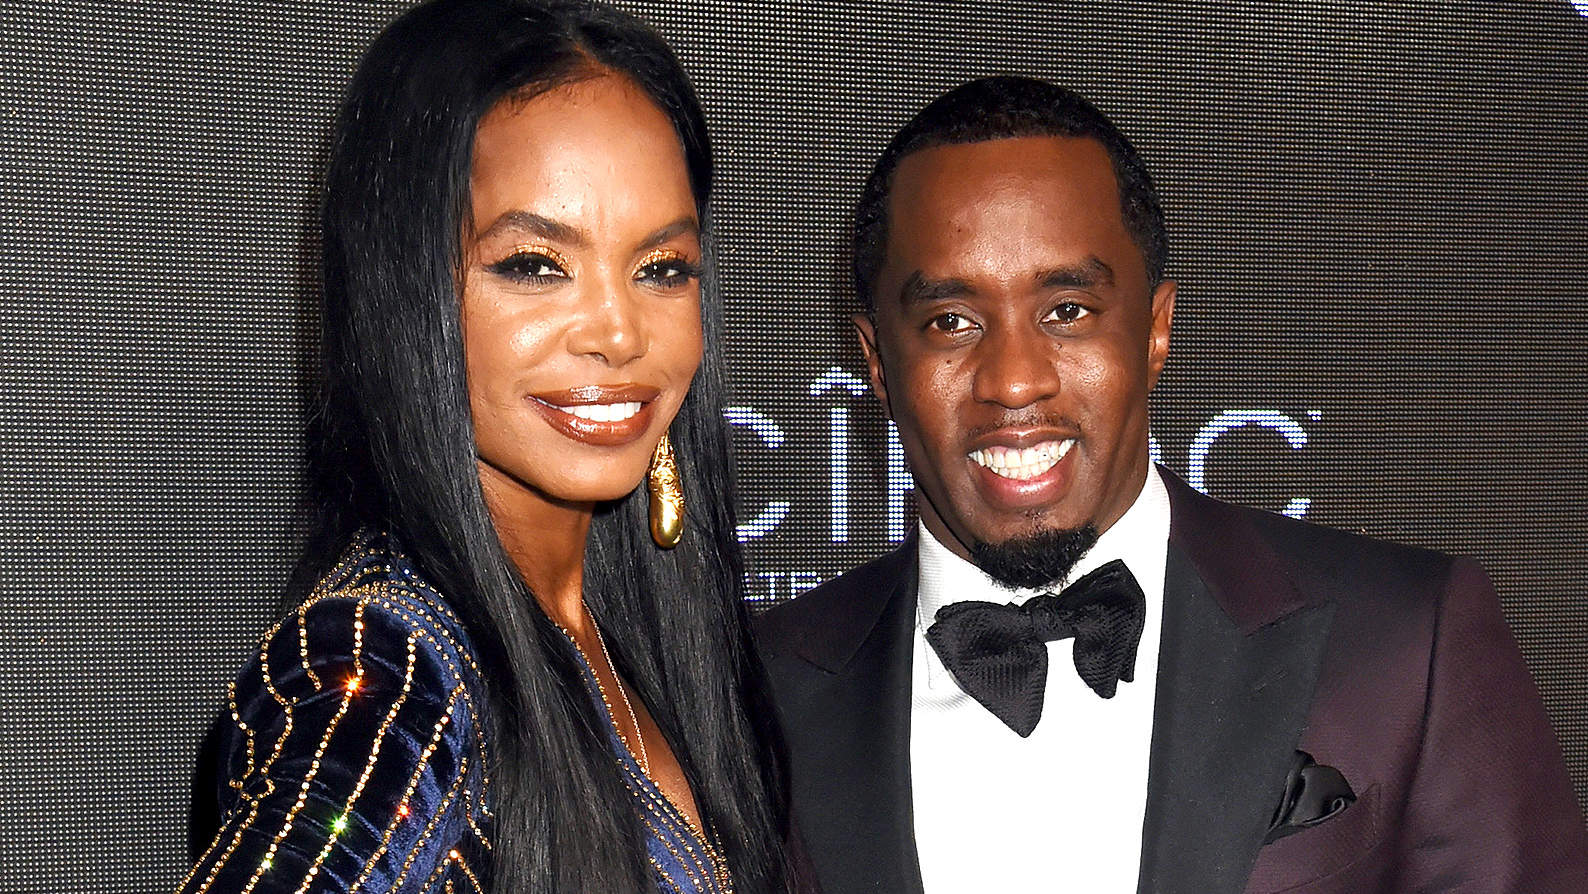 Sean 'Diddy' Combs' Ex-Girlfriend Kim Porter Found Dead at 47 in Her Home